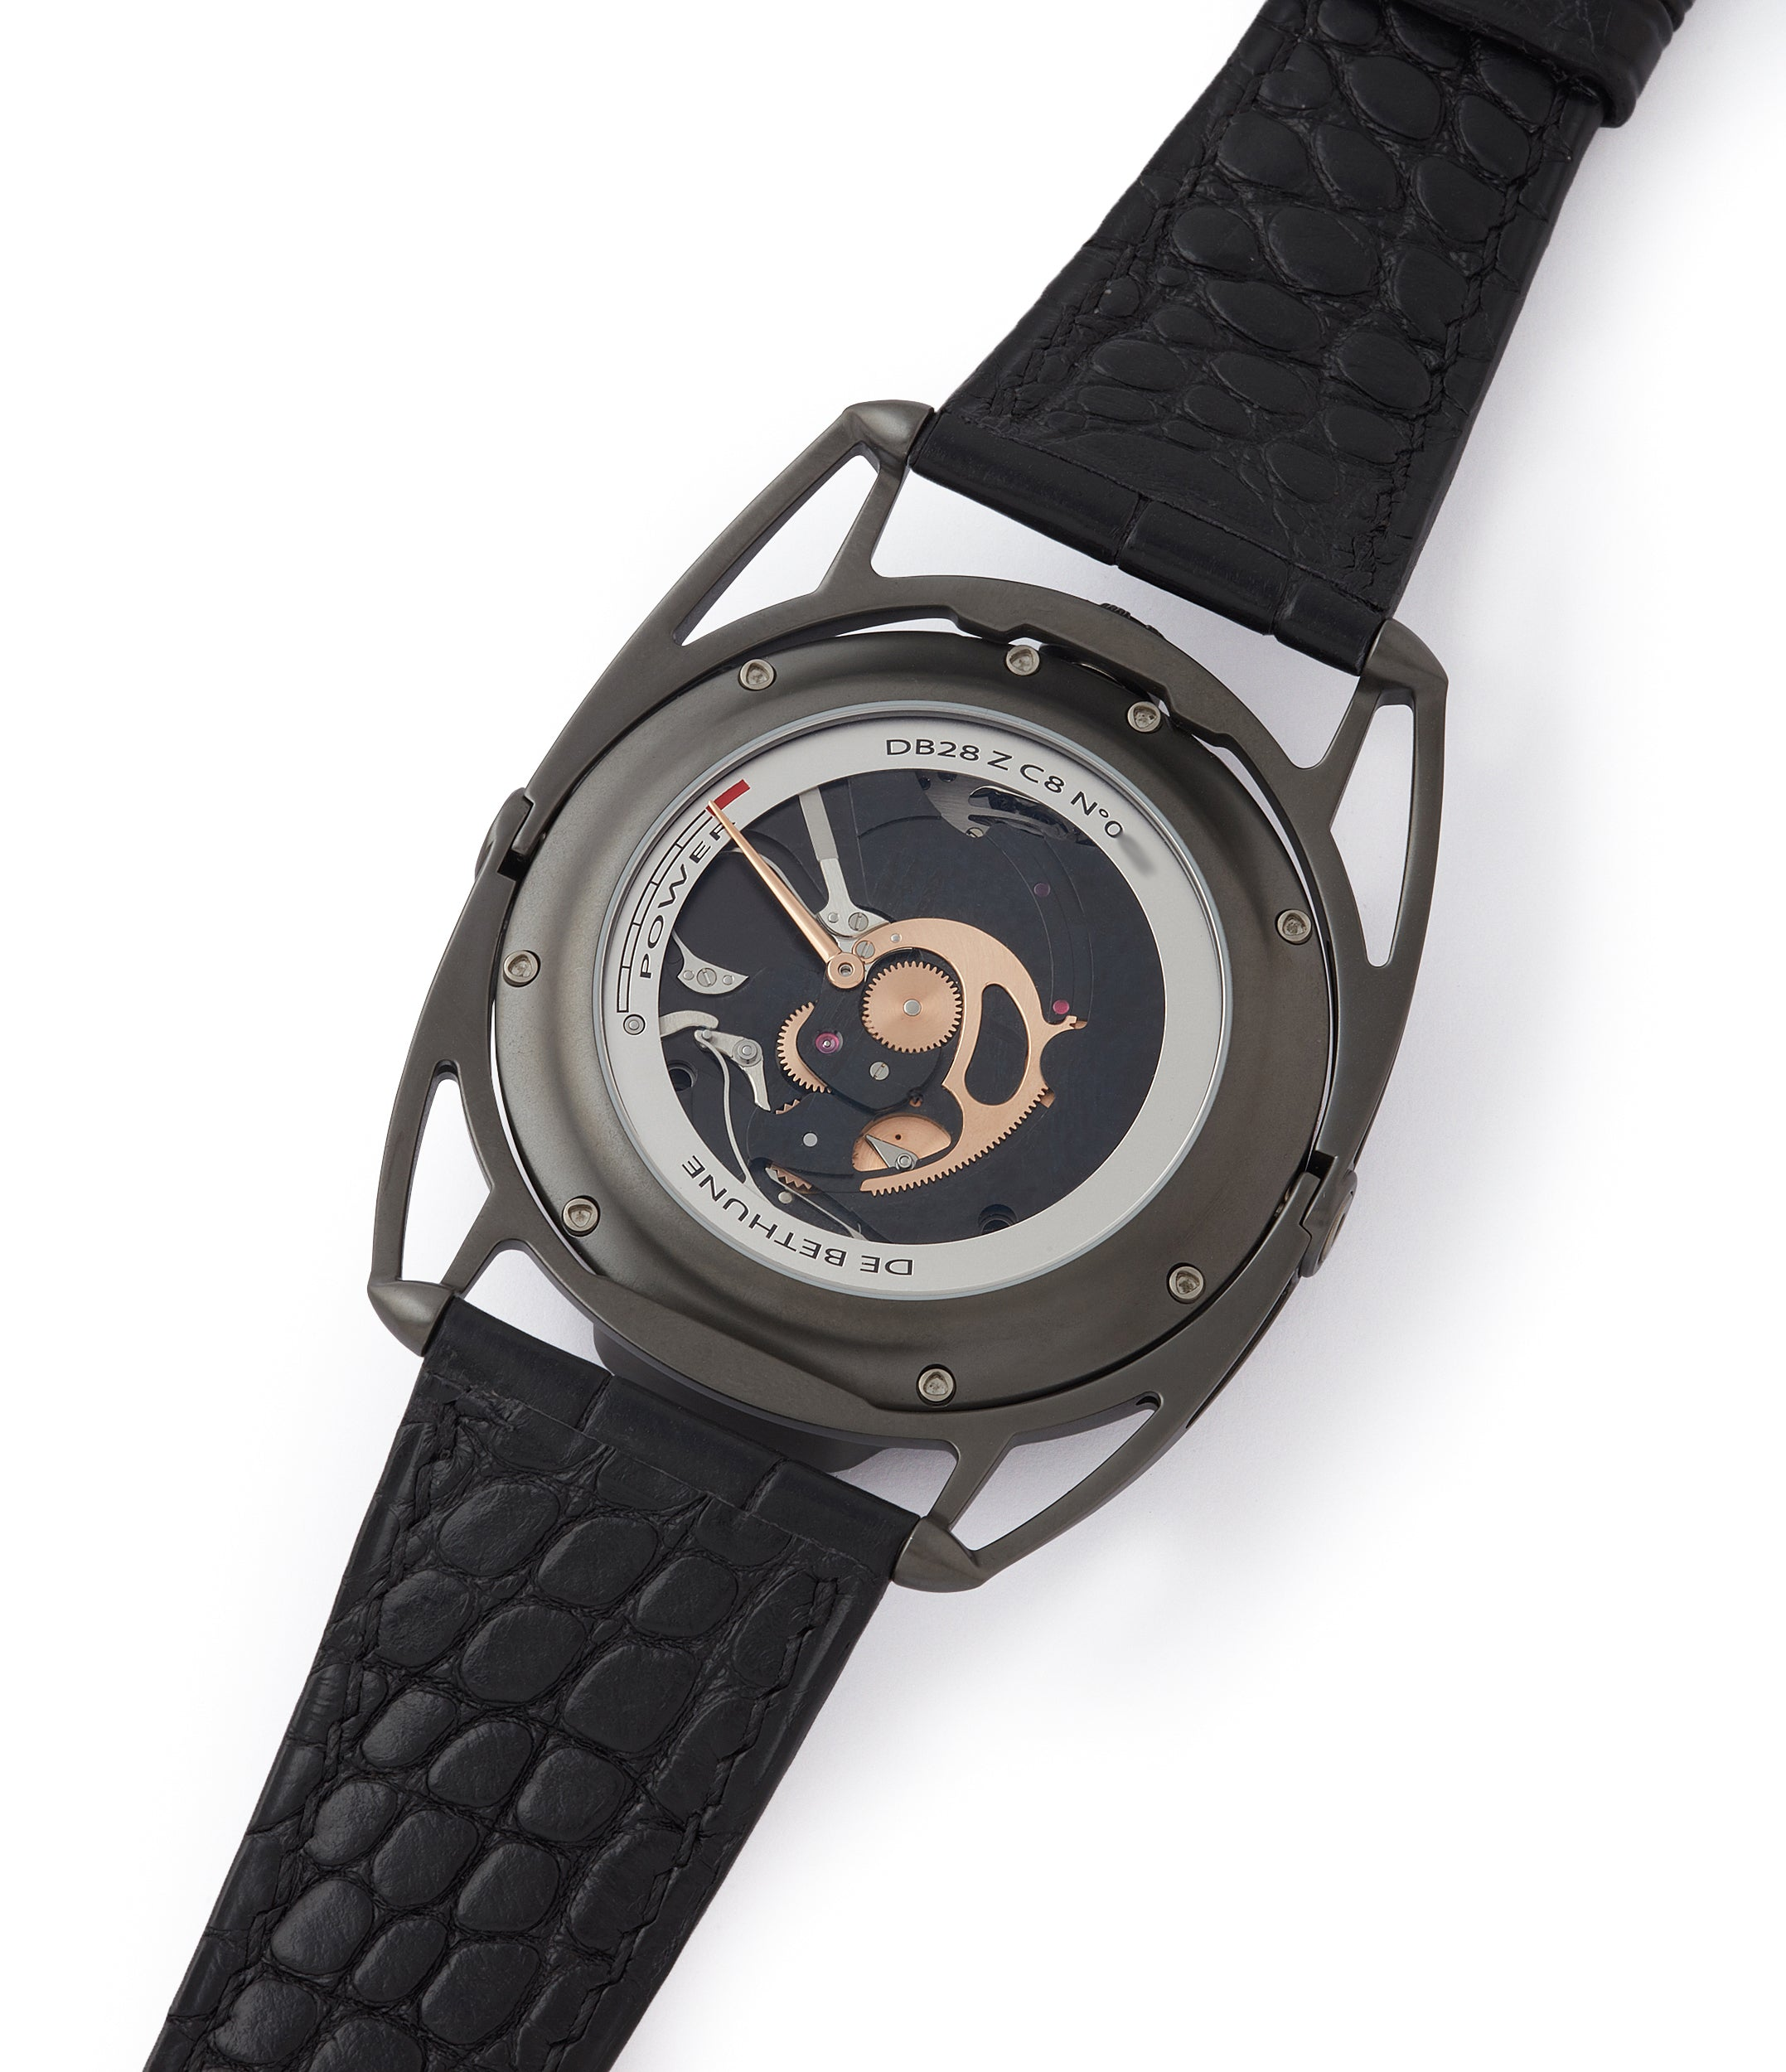 independent watchmaker De Bethune DB28 Dark Shadows independent watchmaker for sale online at A Collected Man London UK specilaist of rare watches